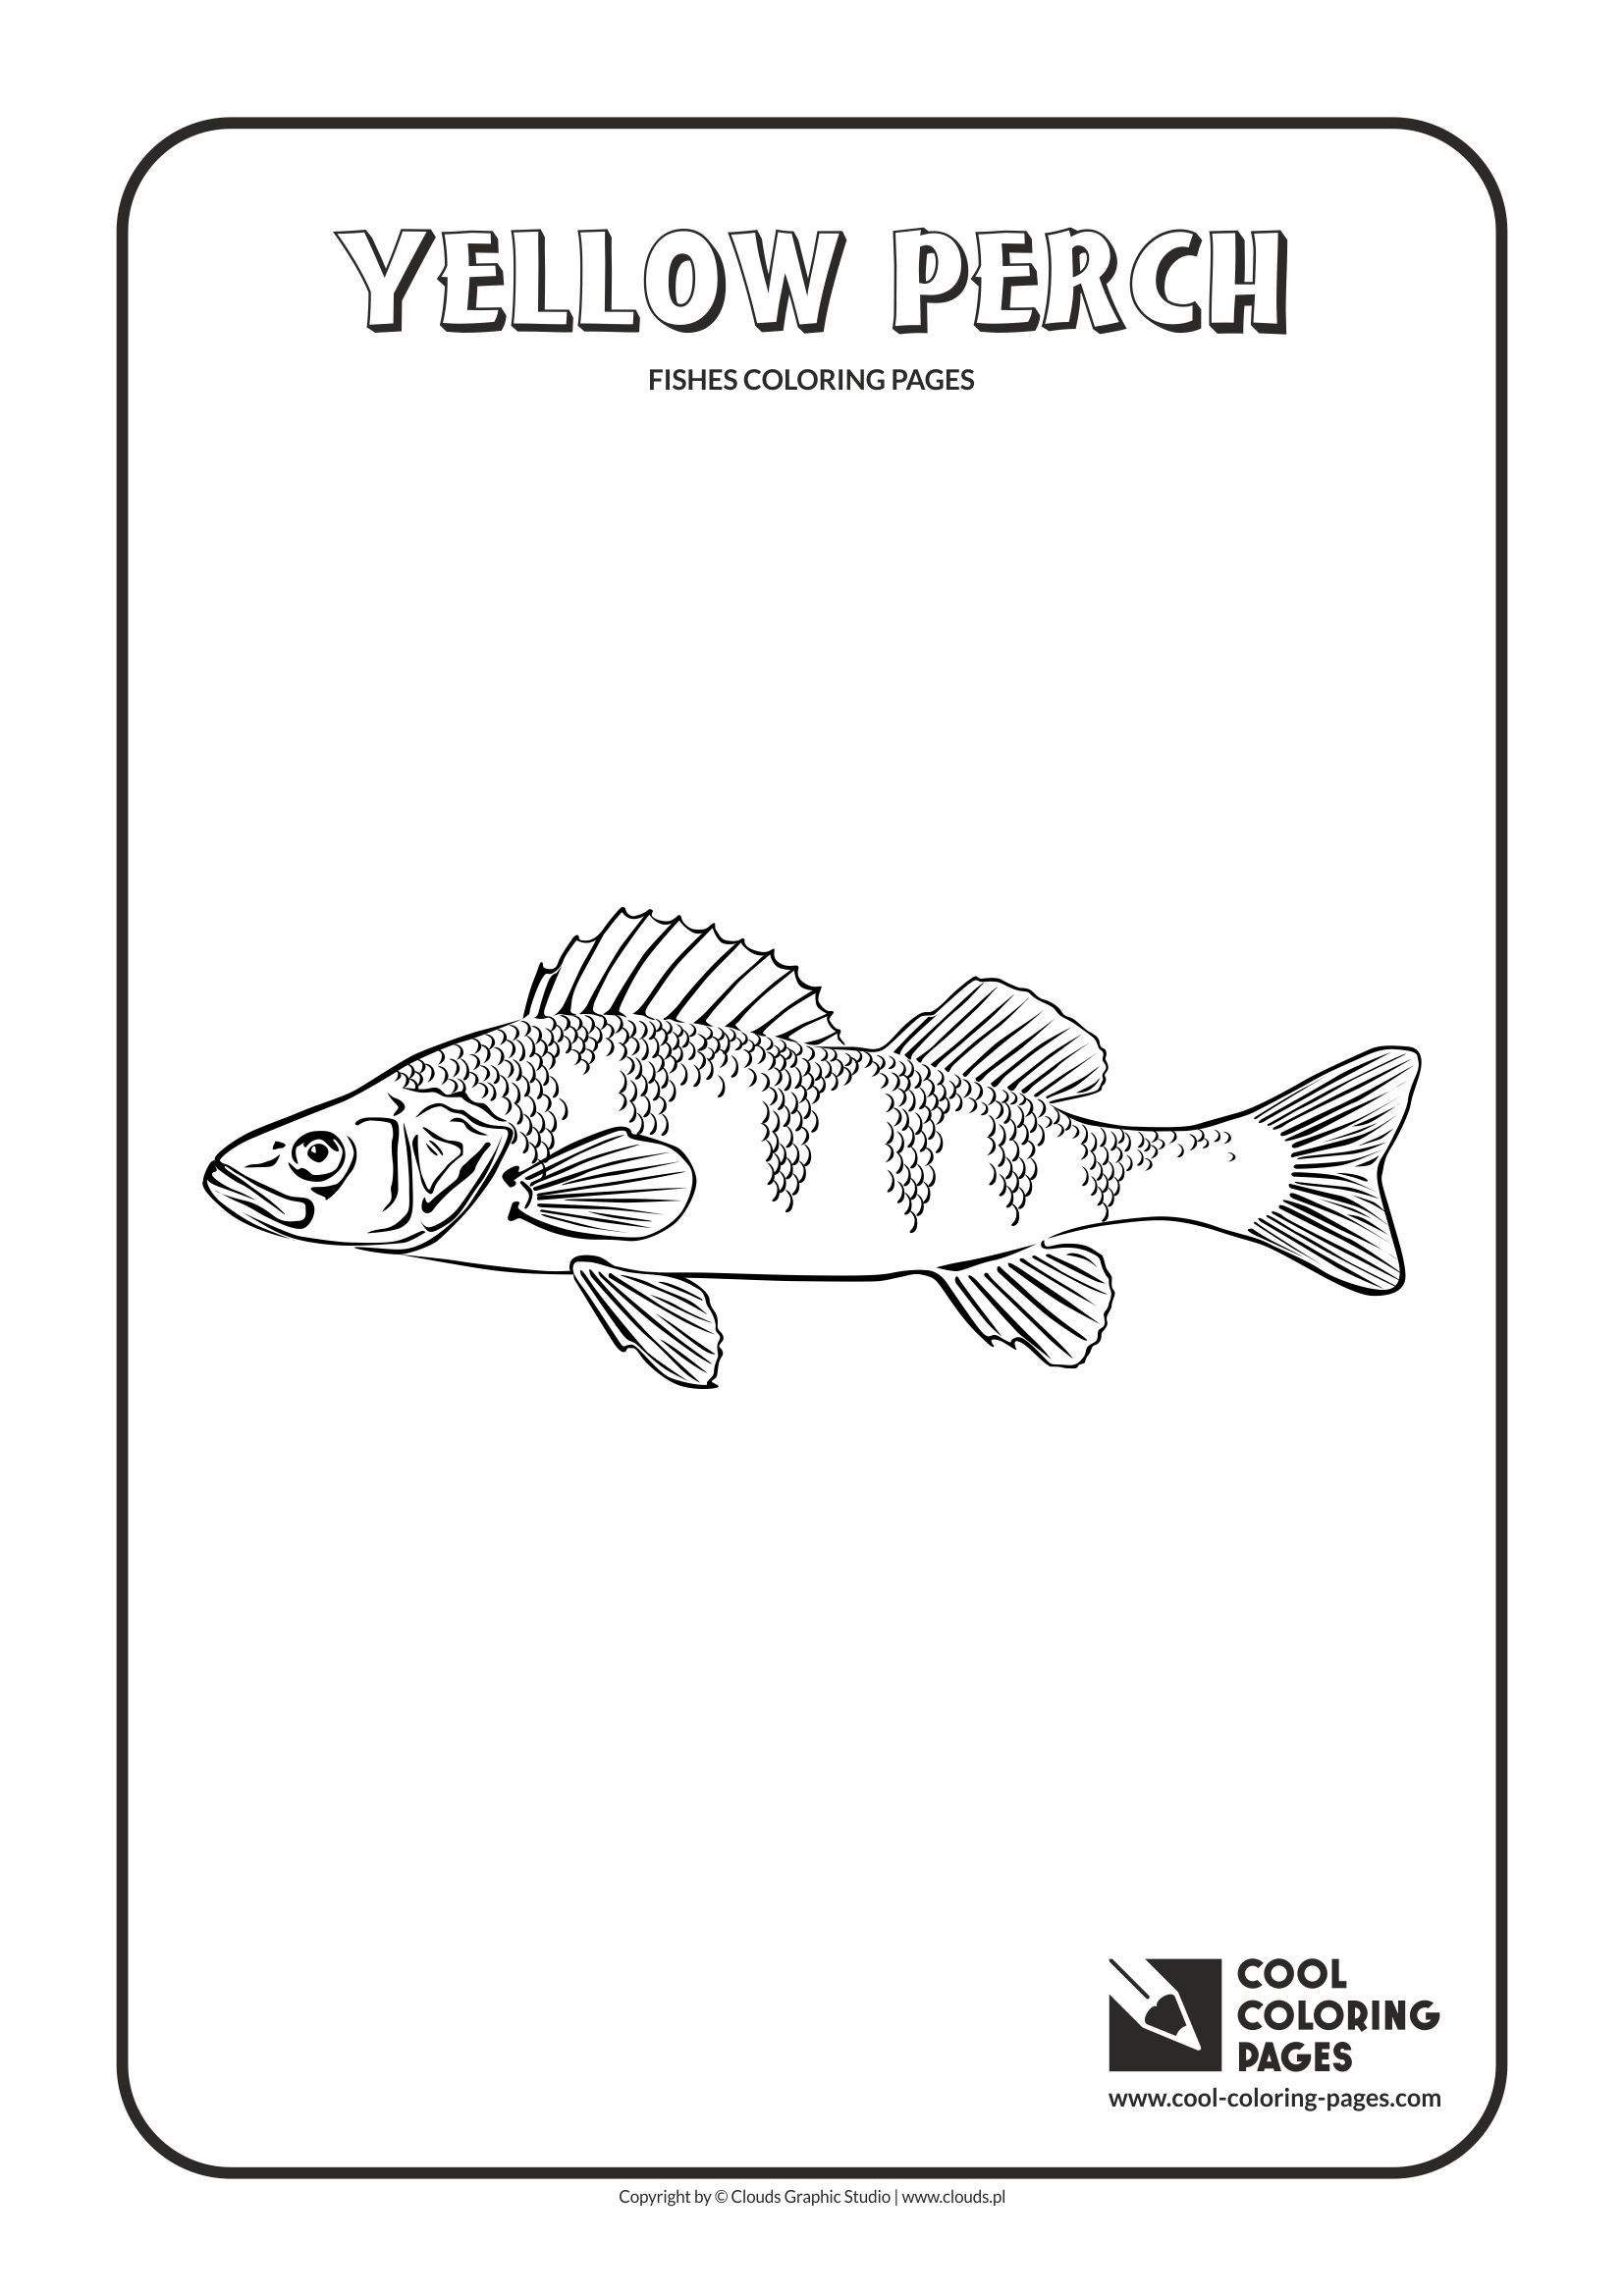 Cool Coloring Pages - Animals / Yellow perch / Coloring page with yellow perch